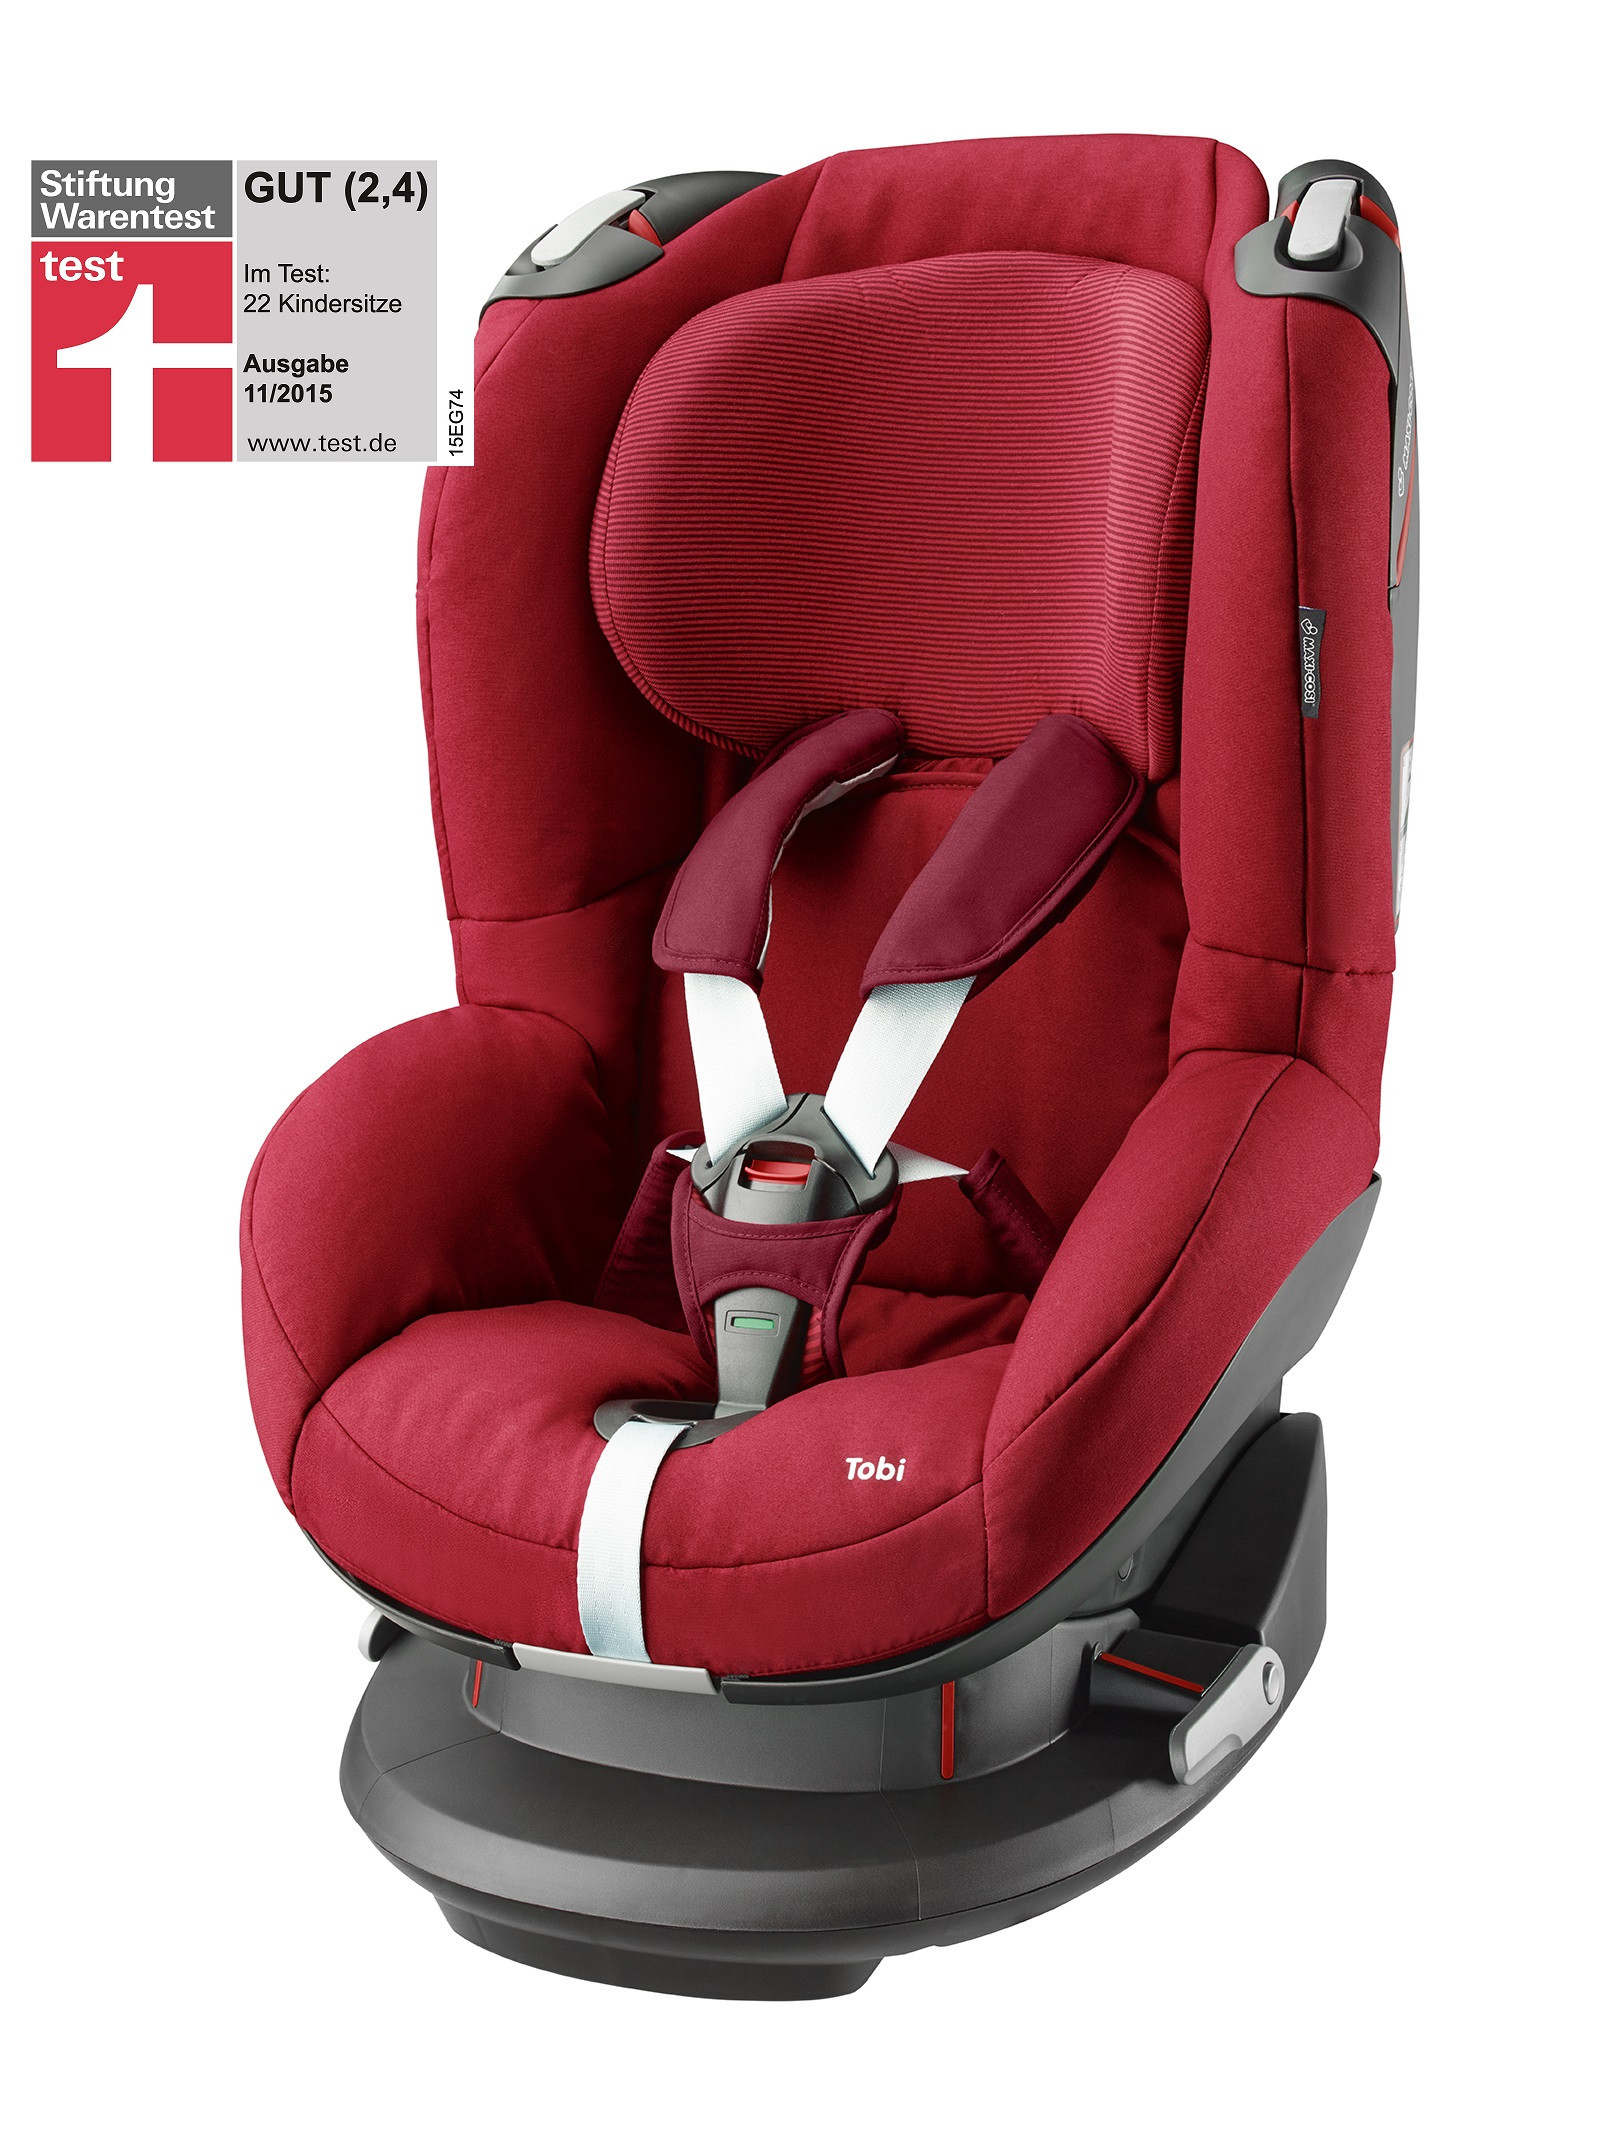 maxi cosi child car seat tobi 2017 robin red buy at kidsroom car seats. Black Bedroom Furniture Sets. Home Design Ideas